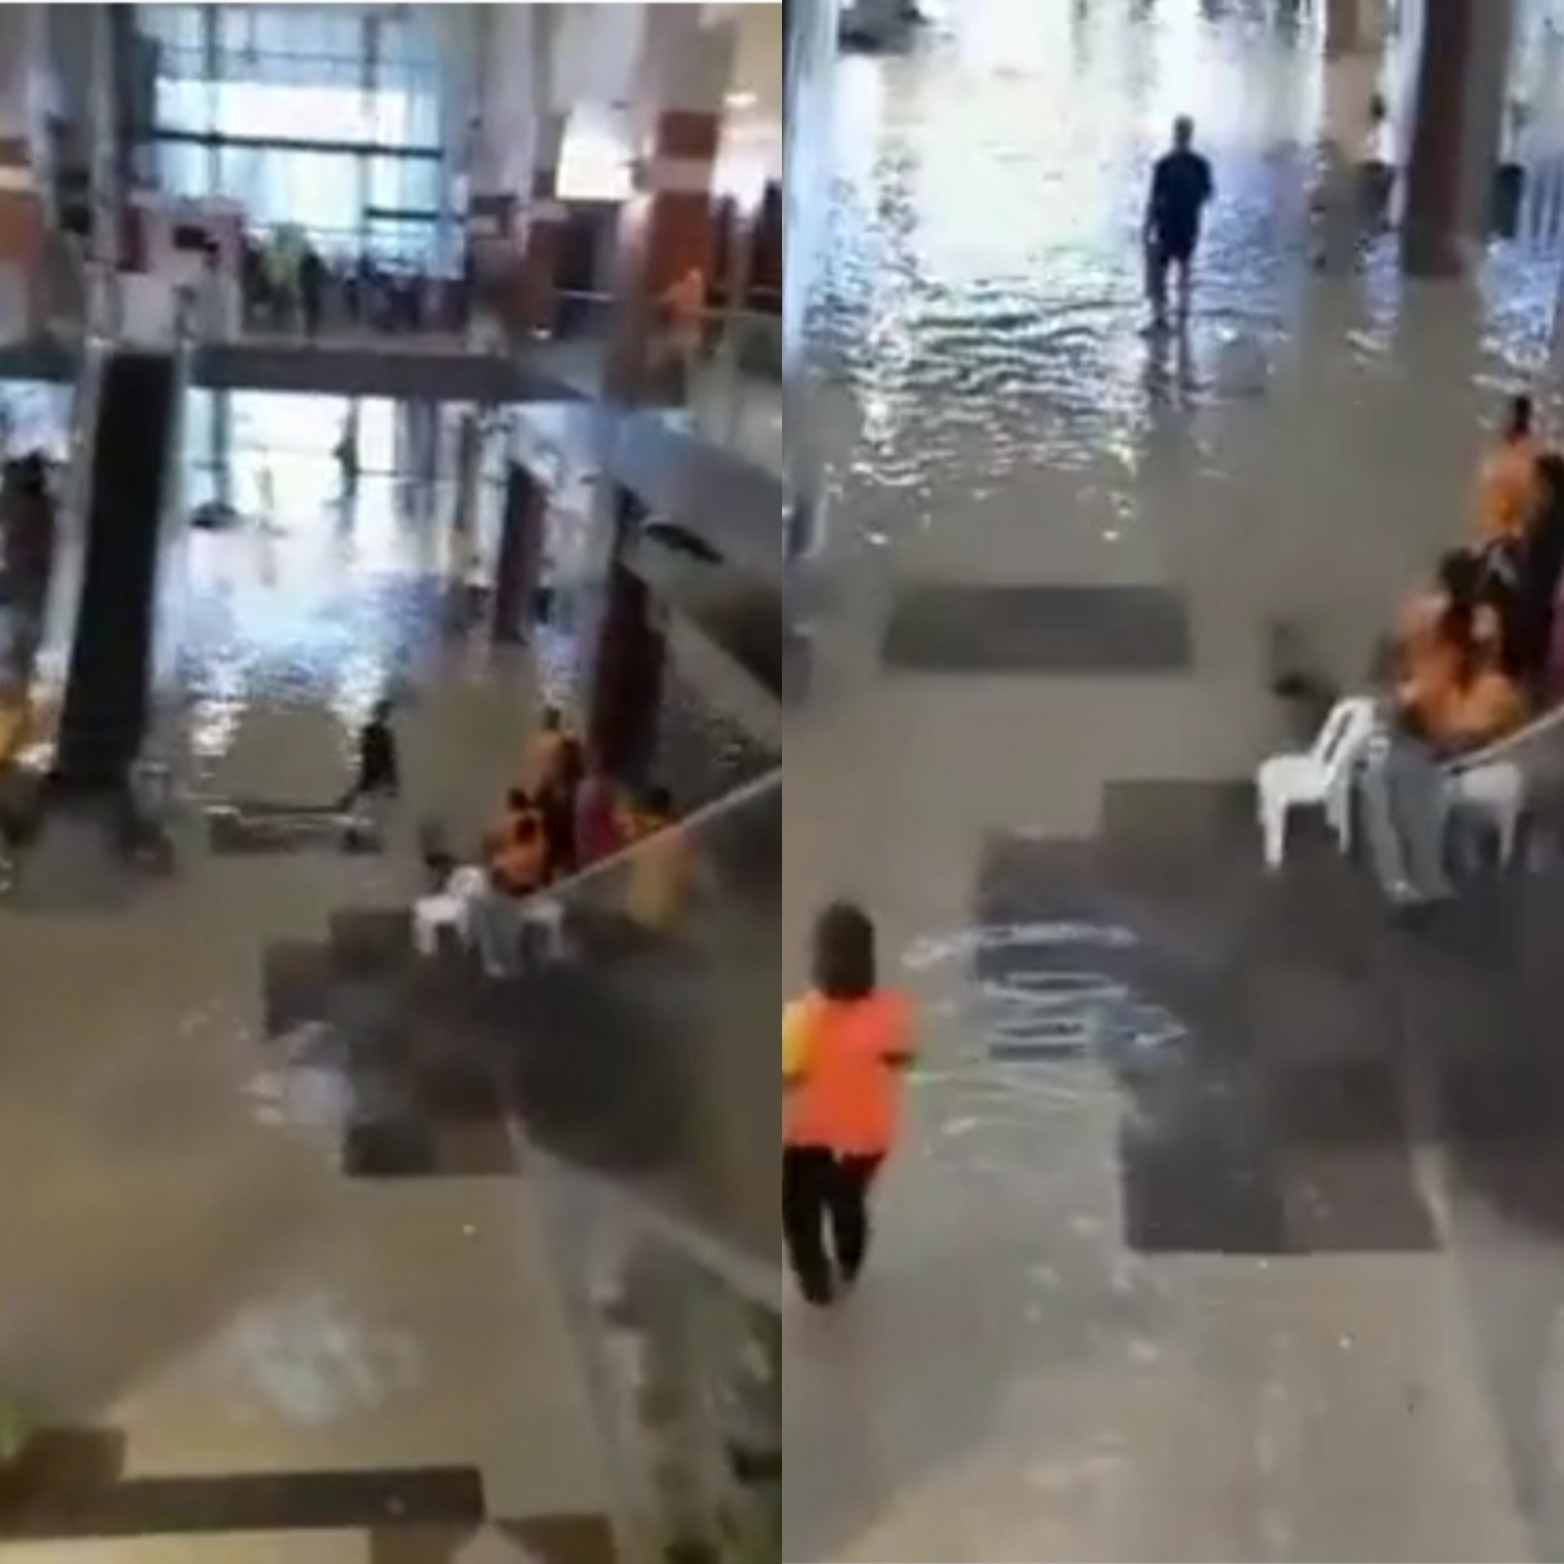 614a28c20b88d - Port Harcourt Mall flooded after heavy rainfall (video)